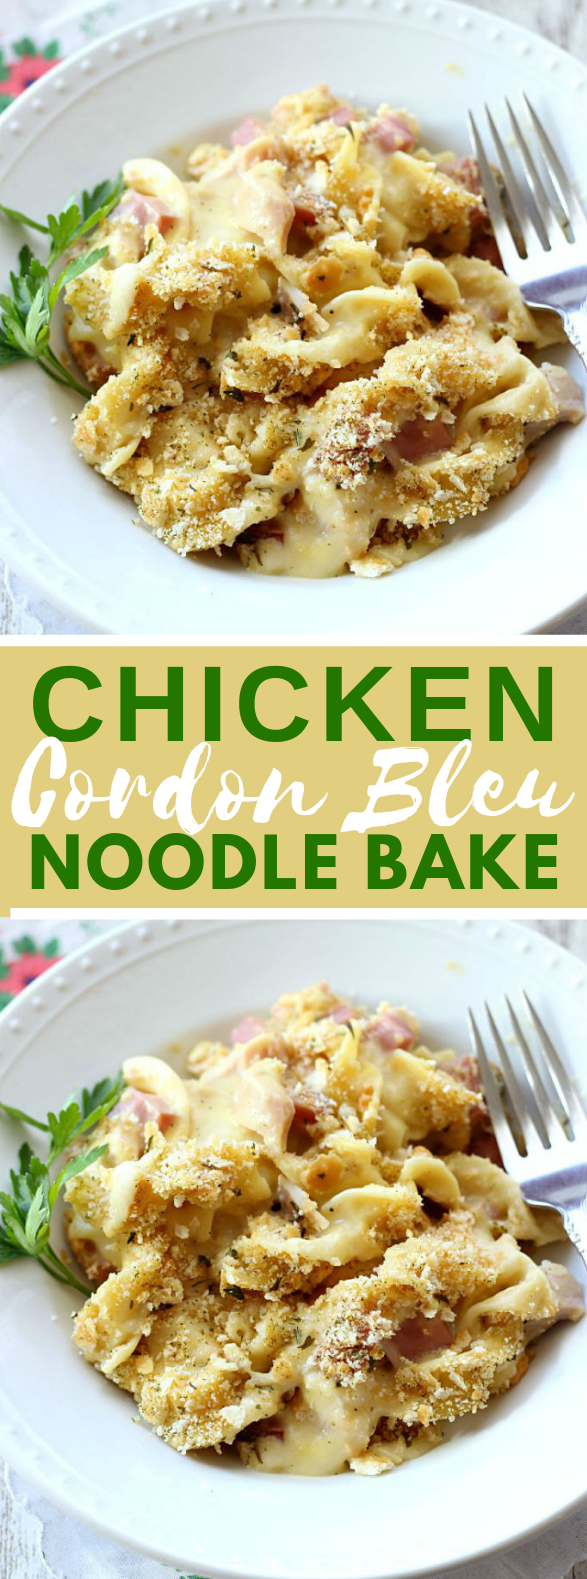 CHICKEN CORDON BLEU NOODLE BAKE #dinner #quickmeals